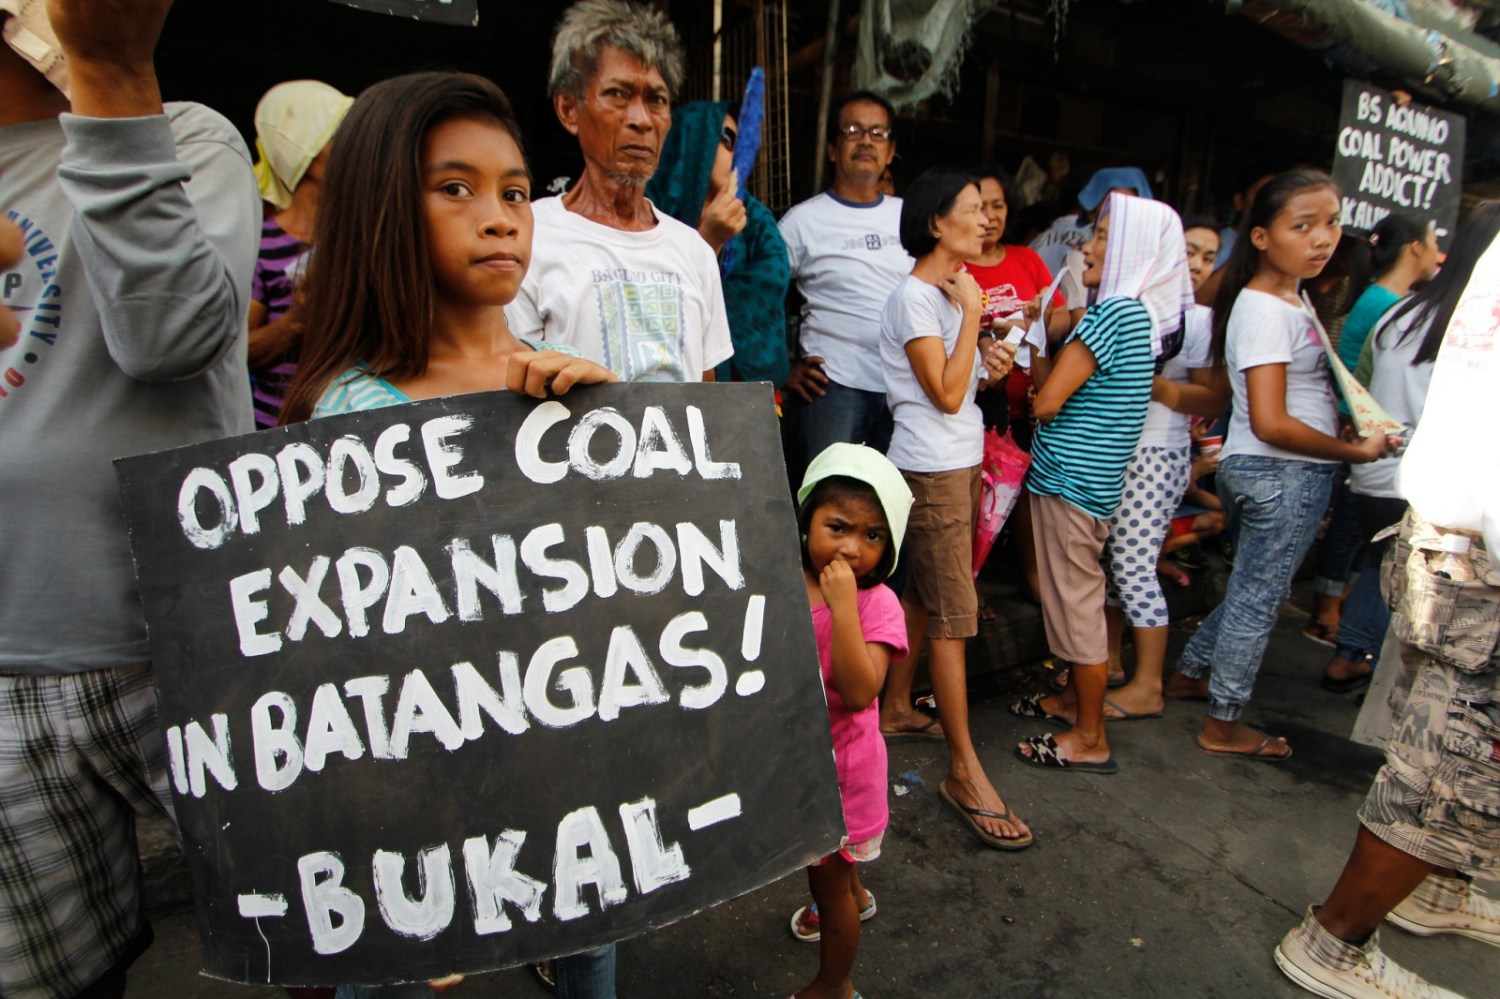 An investigation by Inclusive Development International makes a powerful case that in spite of the public commitment the World Bank made three years ago to stop financing coal projects, it continues to do so surreptitiously and indirectly. Escalating development of coal-fired power plants has stirred public opposition in the Philippines.